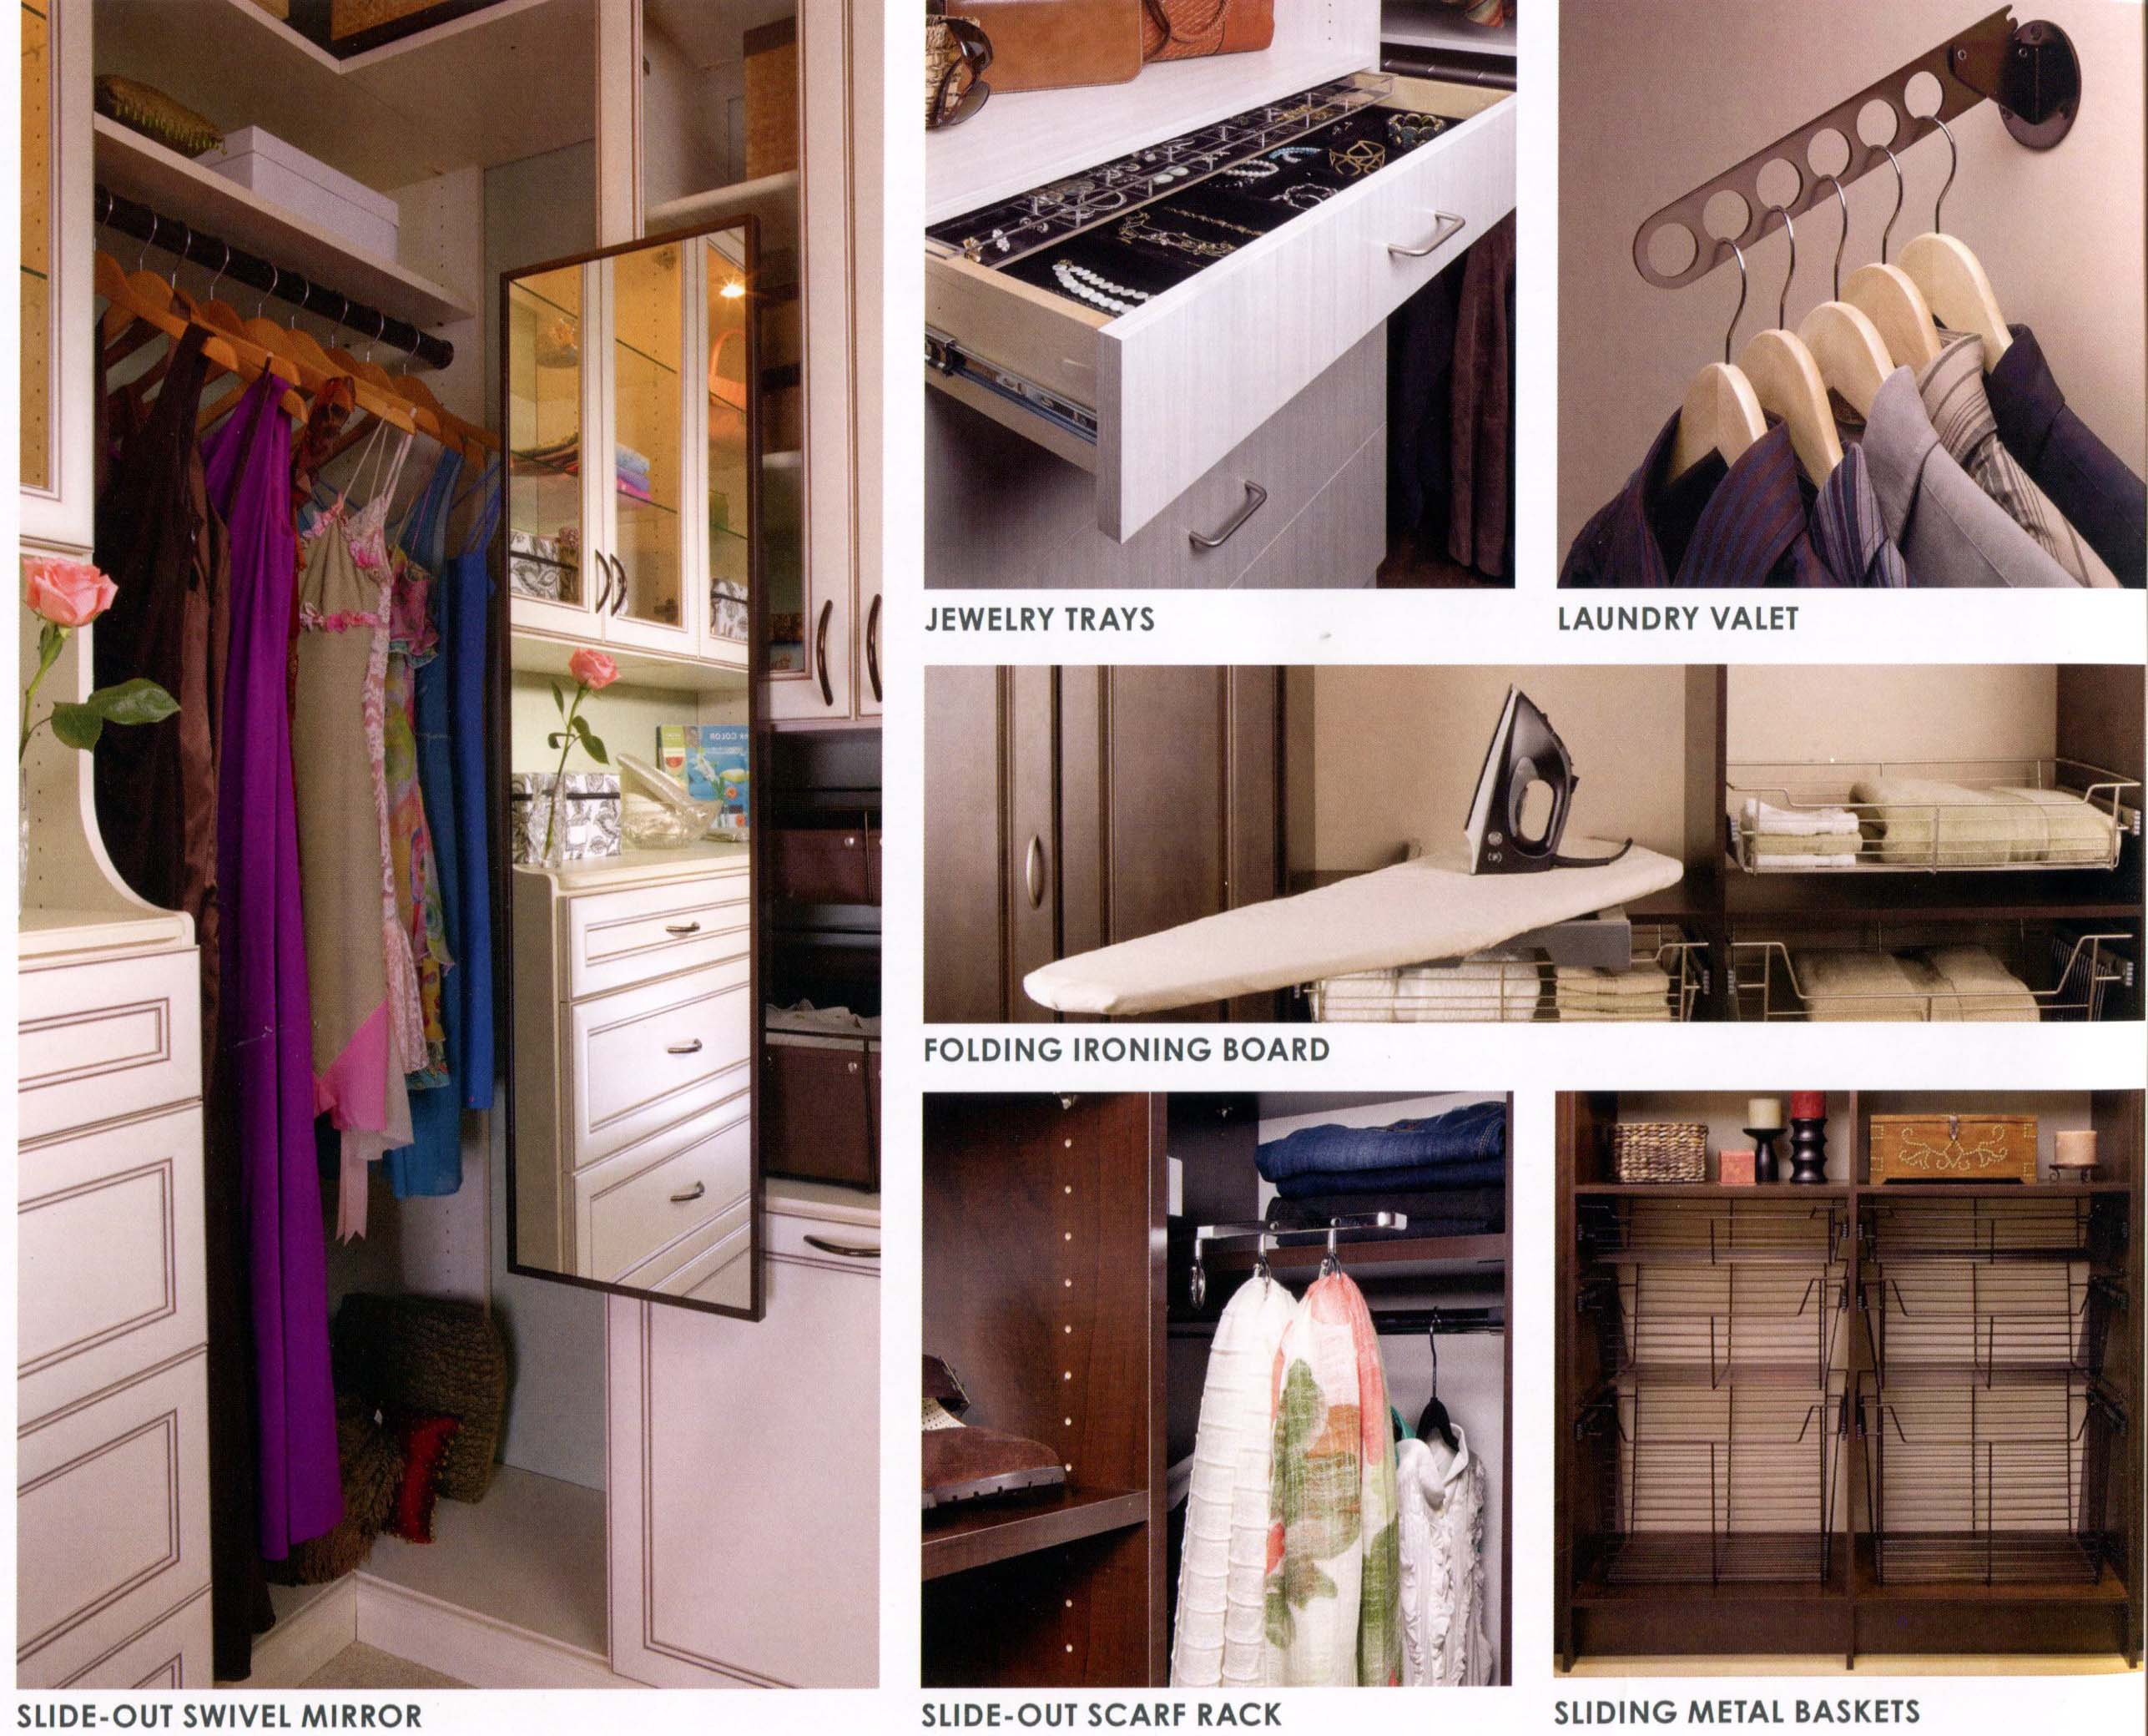 Jewelry Trays - Laundry Valet - Folding Ironing Board - Slide-Out Swivel Mirror - Slide-Out Scarf Rack - Sliding Metal Baskets